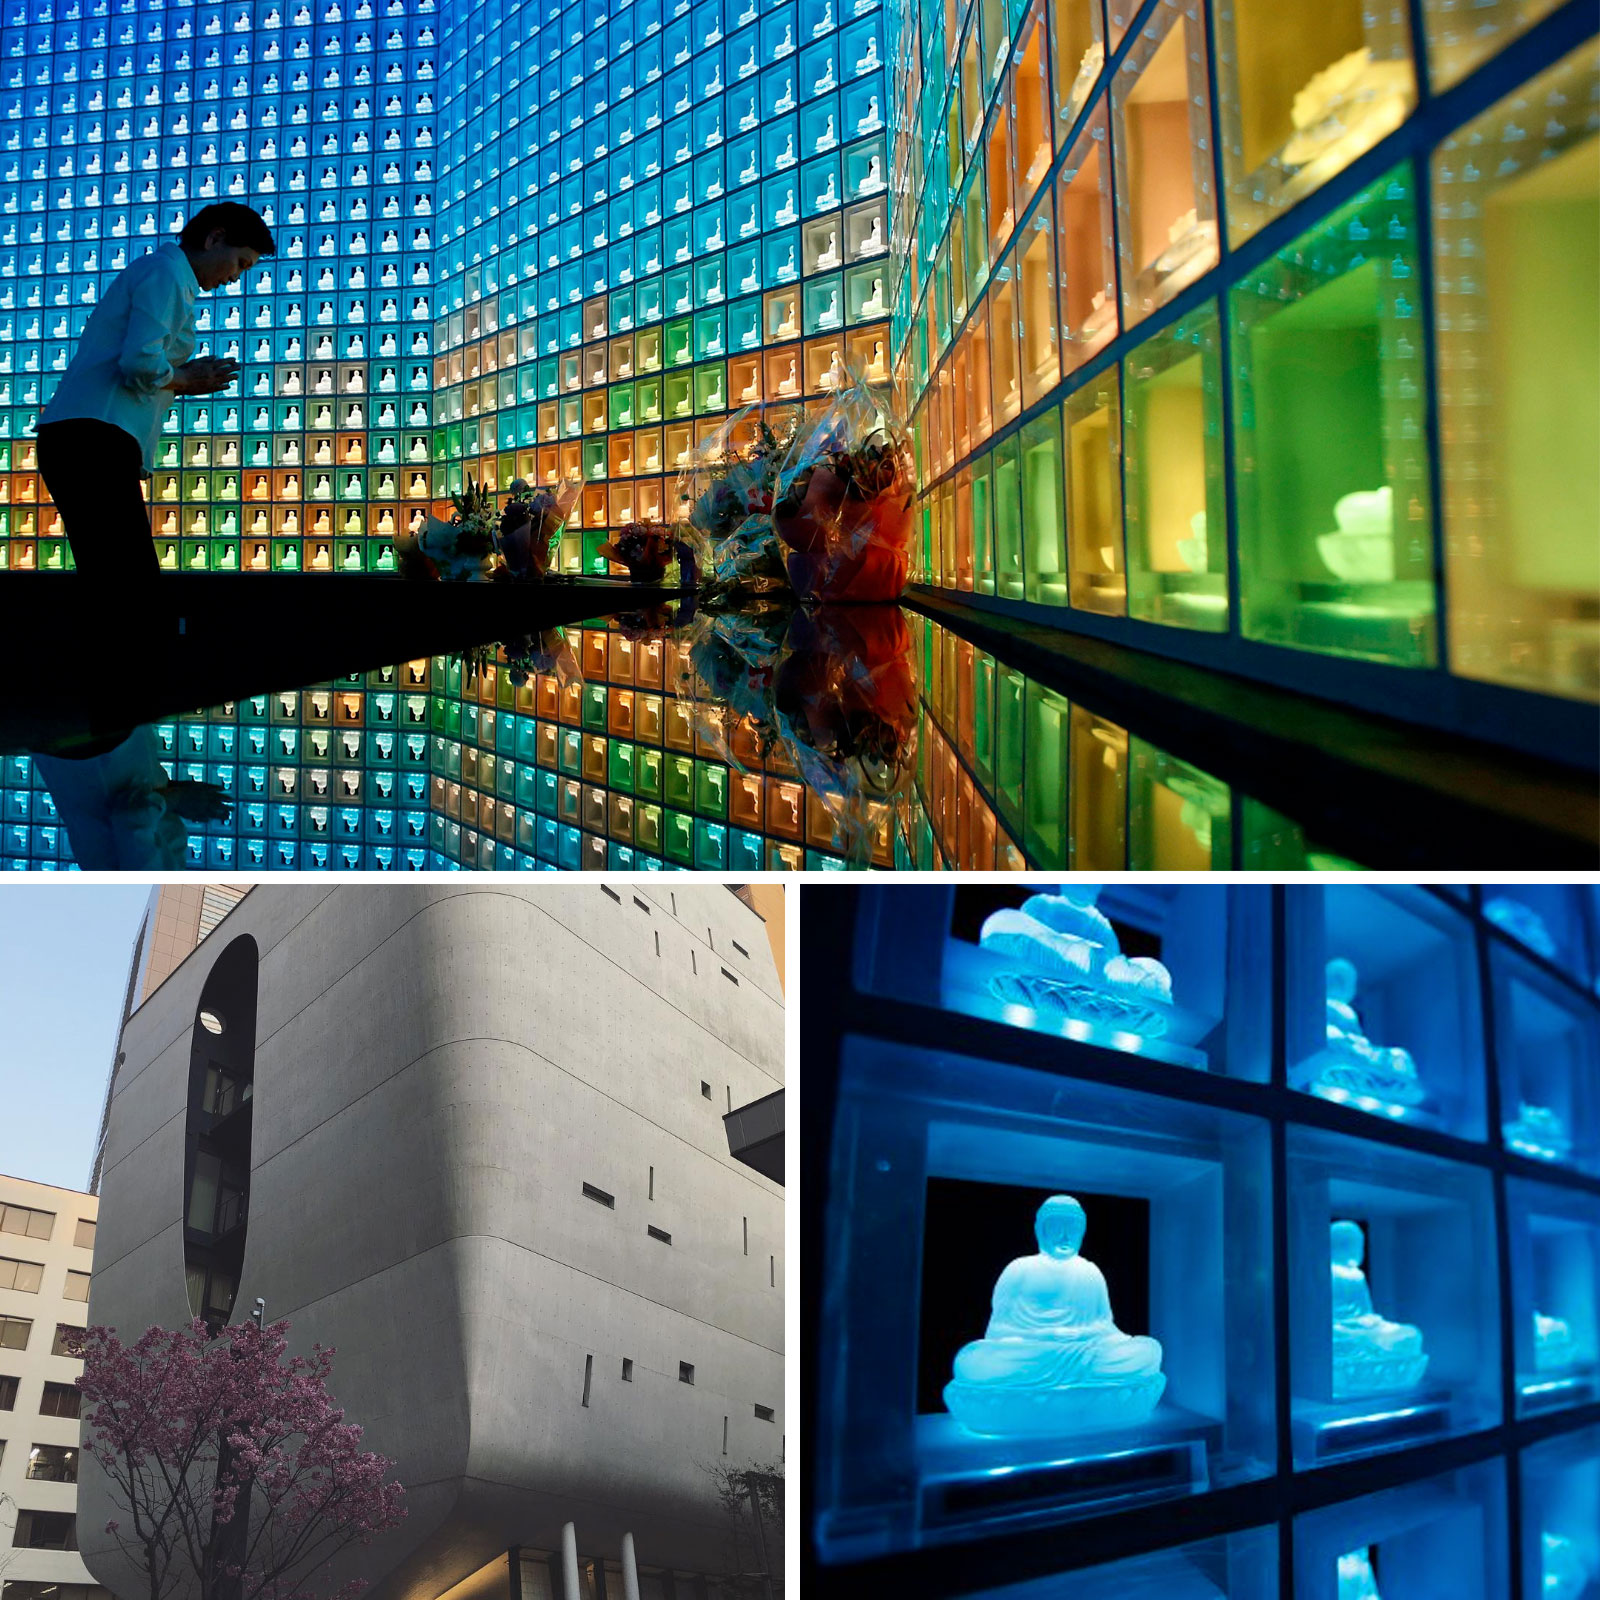 Japan's techno-cemeteries replace tombstones with LED Buddhas and conveyor belts.